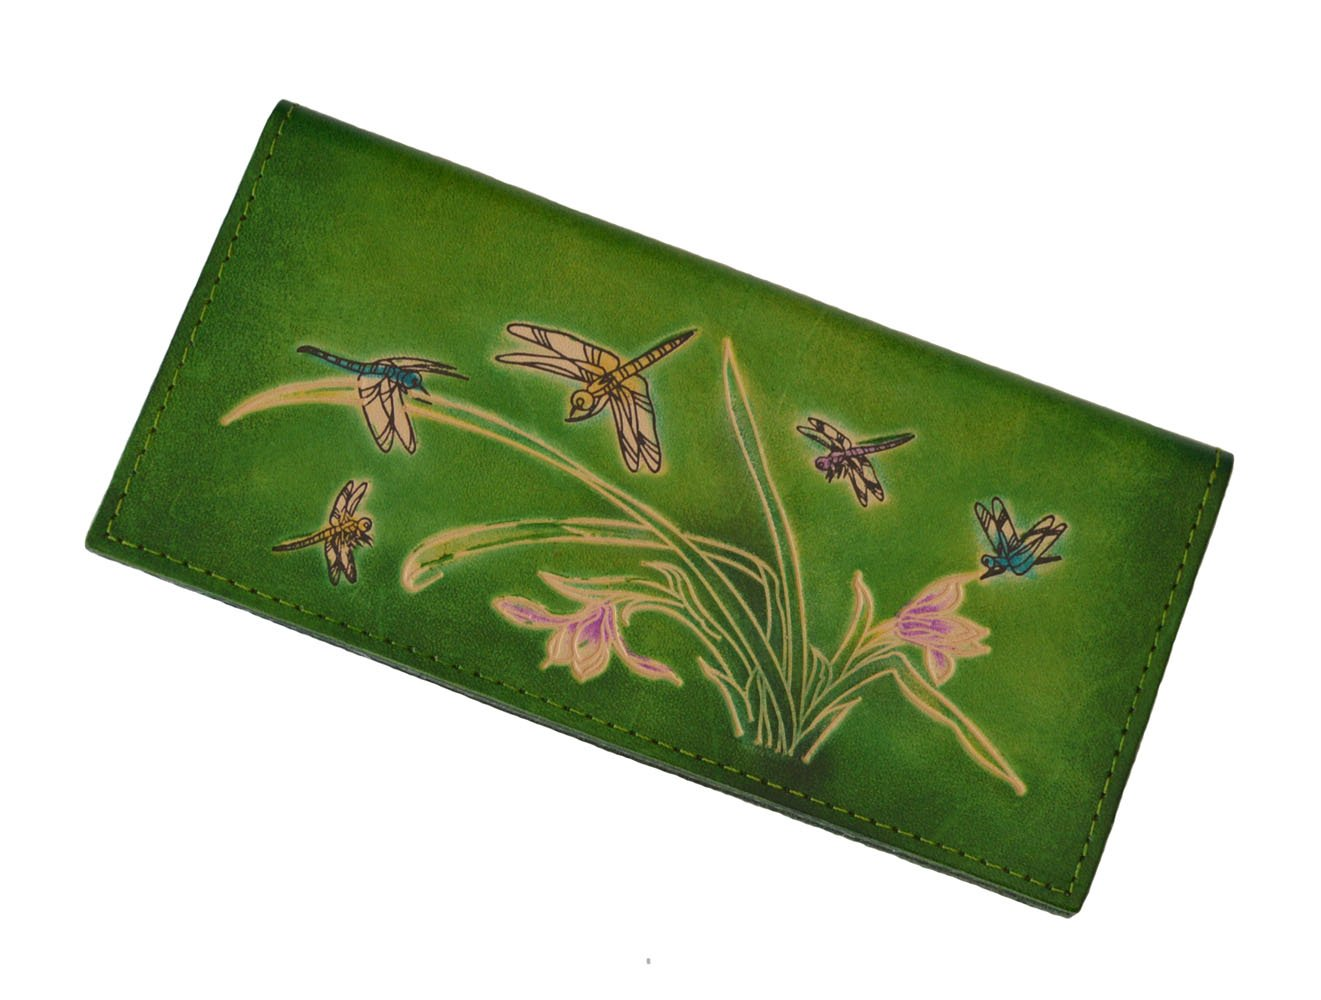 Genuine Leather Checkbook Cover, Dragonflies & Iris Flower Pattern, More Color. (Green) by BPLeathercraft